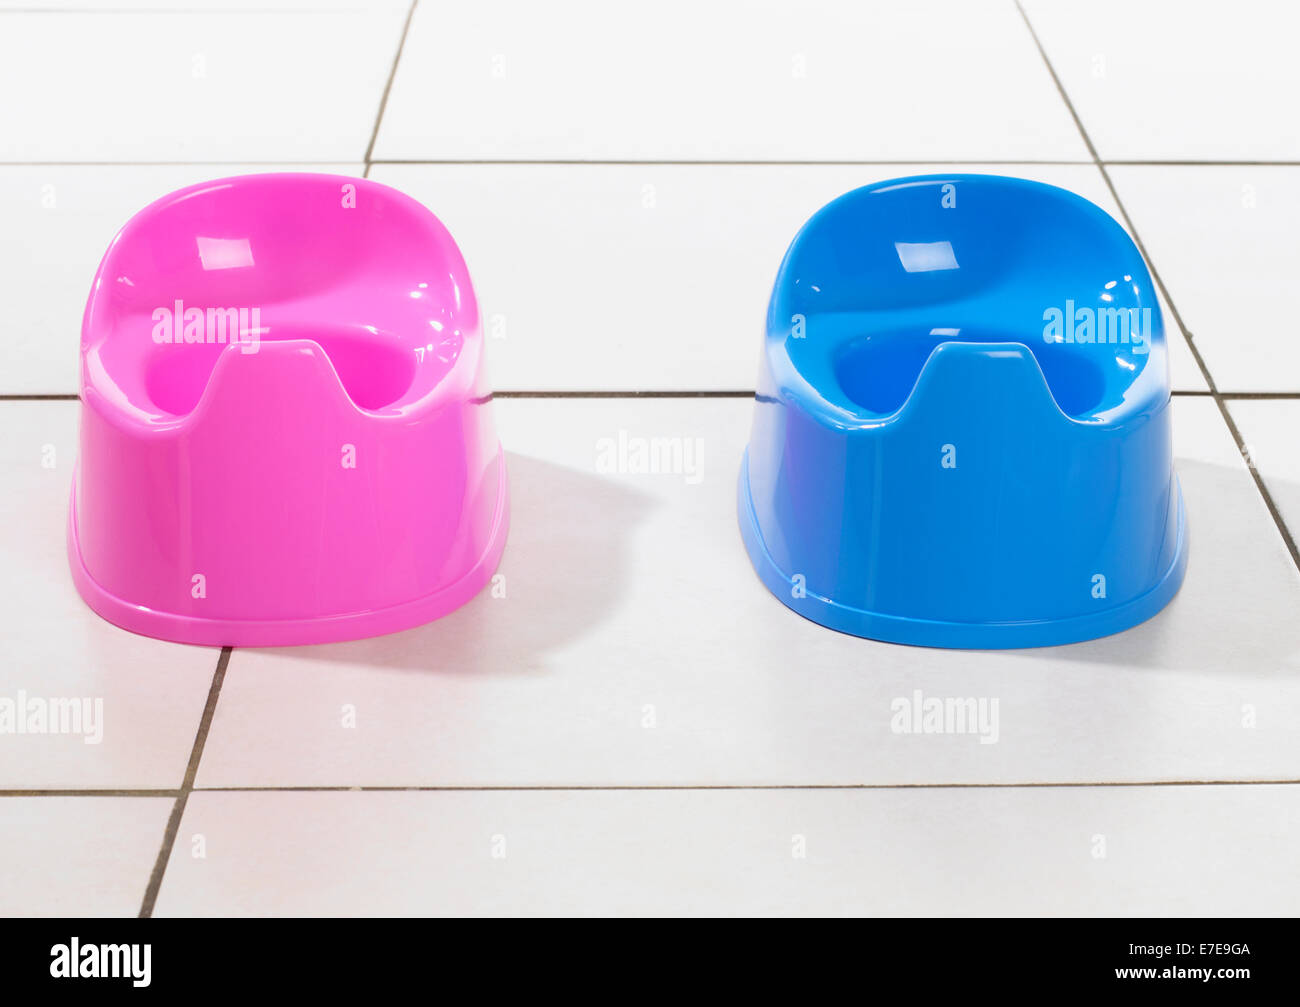 Plastic potties for girls and boys in pink and blue - Stock Image